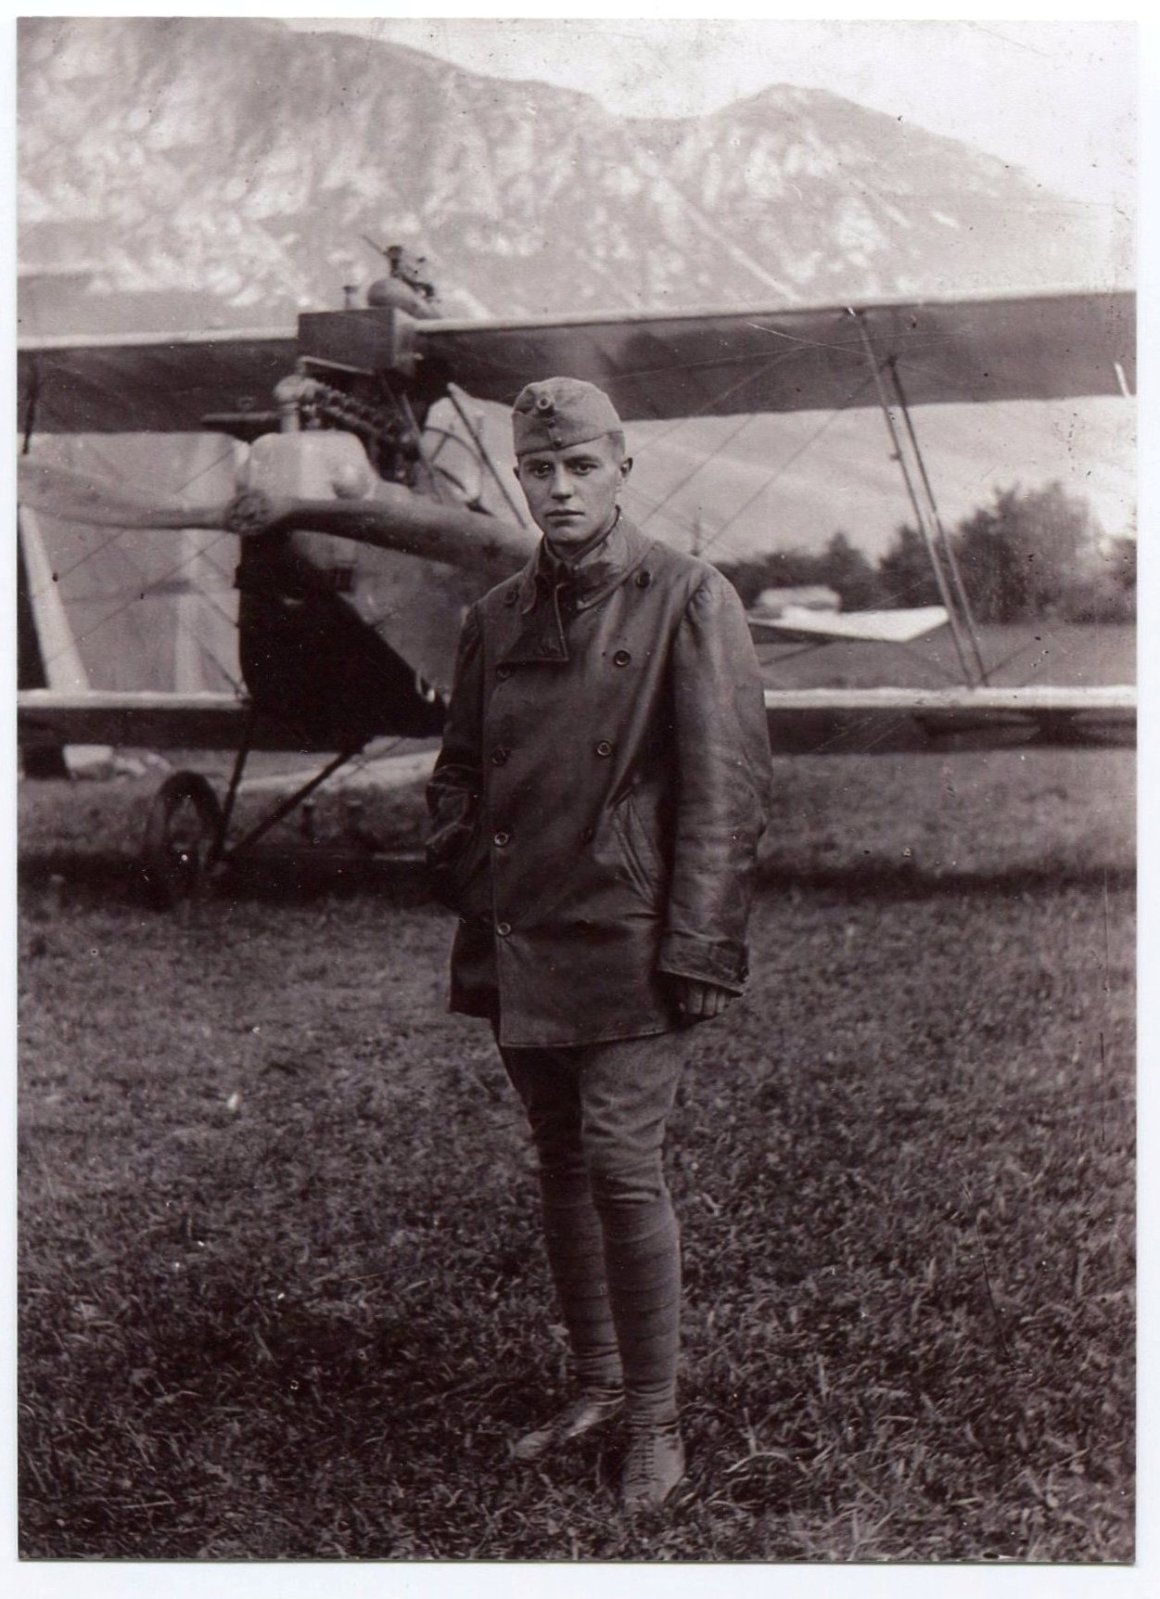 Julian Kenda, Photo of Julian Kenda in uniform, Europeana 1914- 1918 / Simon Kovačič, CC BY-SA